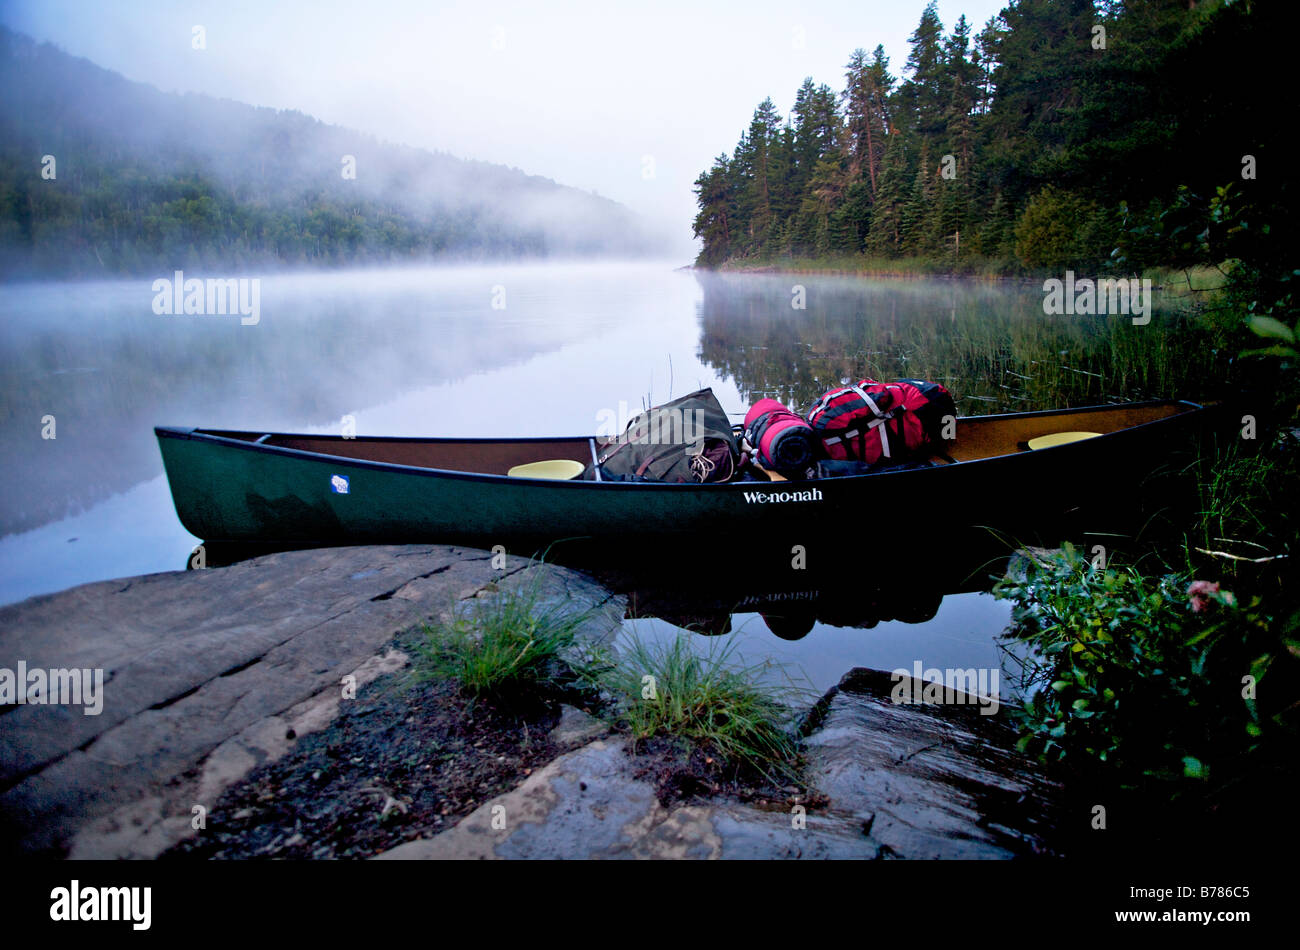 Packed up and ready to leave base camp in Boundary Waters Canoe Area Wilderness in the Superior National Forest - Stock Image